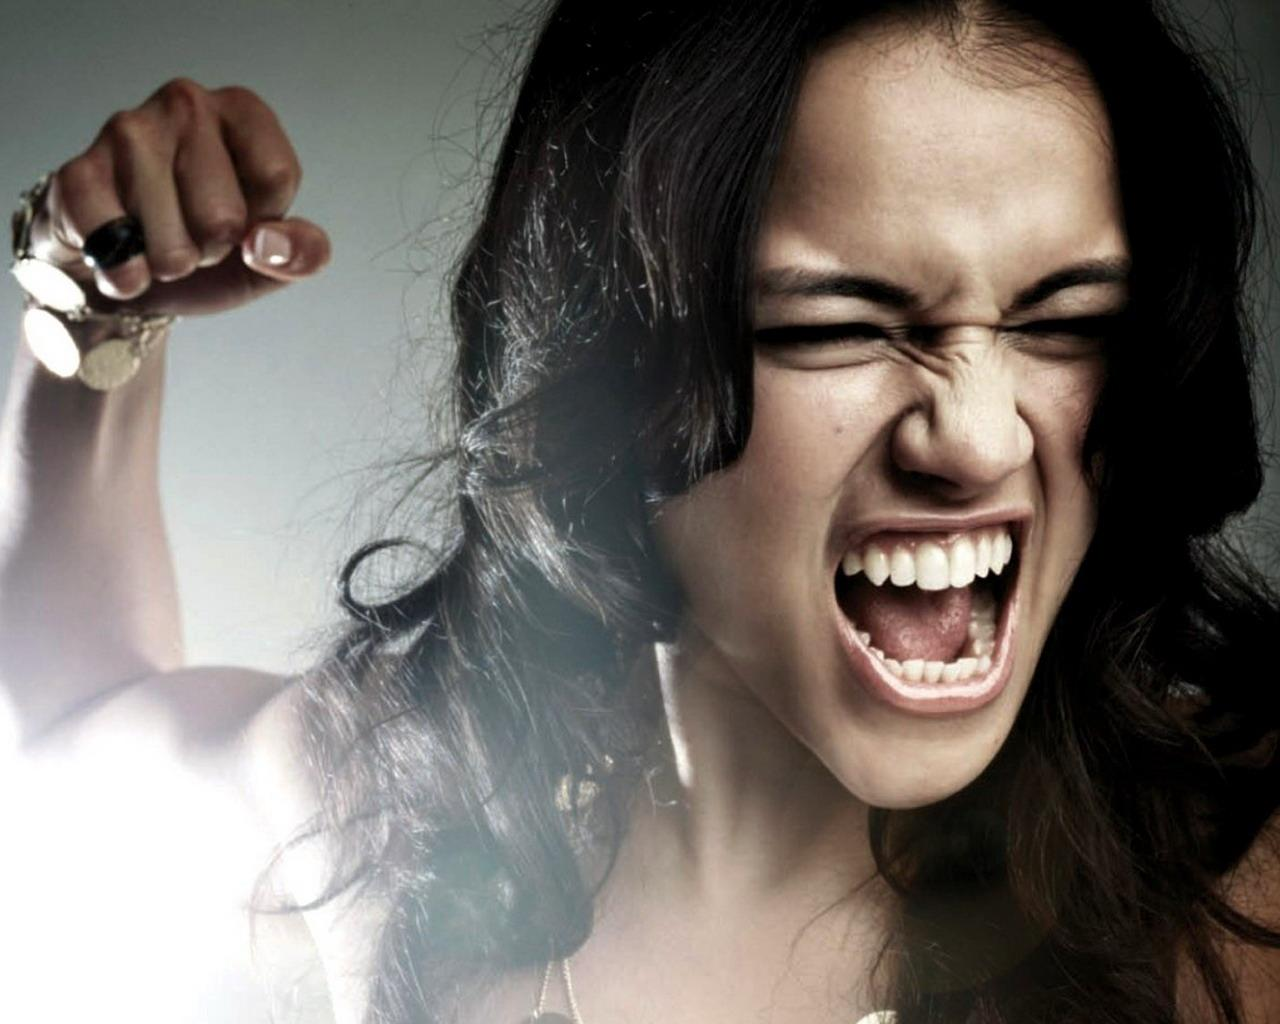 Woman Screaming Anger